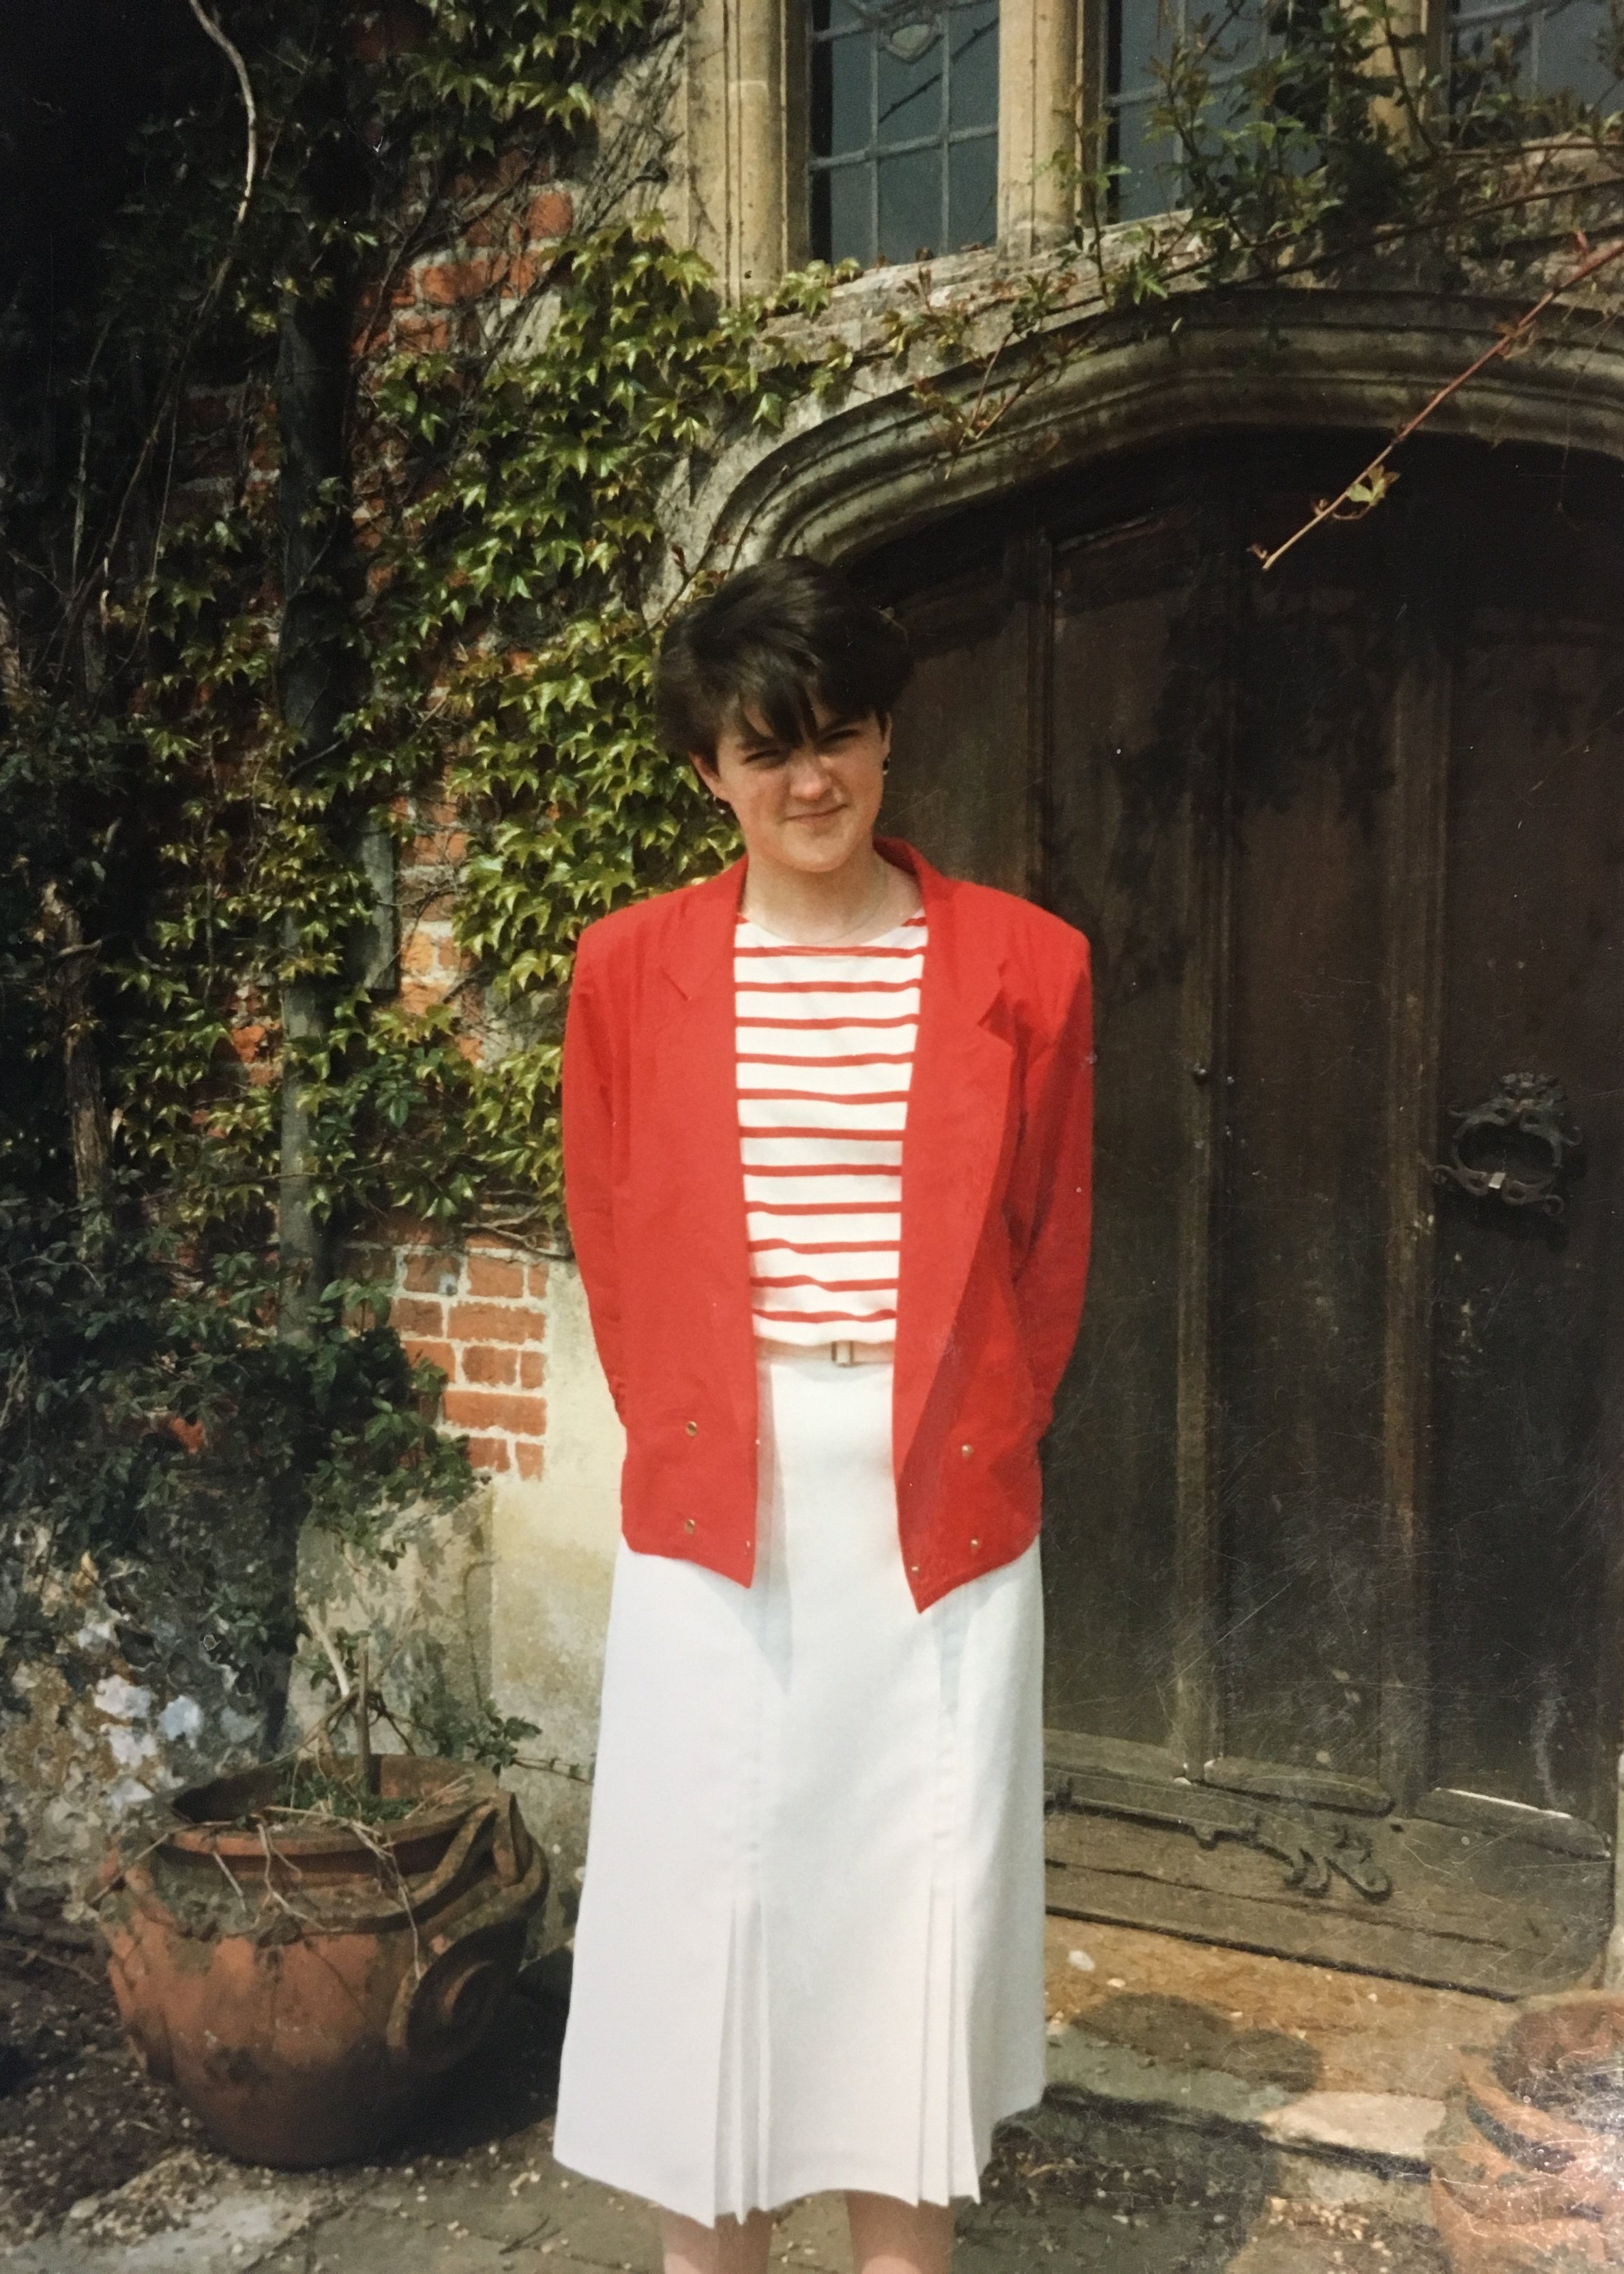 Caroline outside Chawton House   © Jane Austen Literacy Foundation. All Rights Reserved.